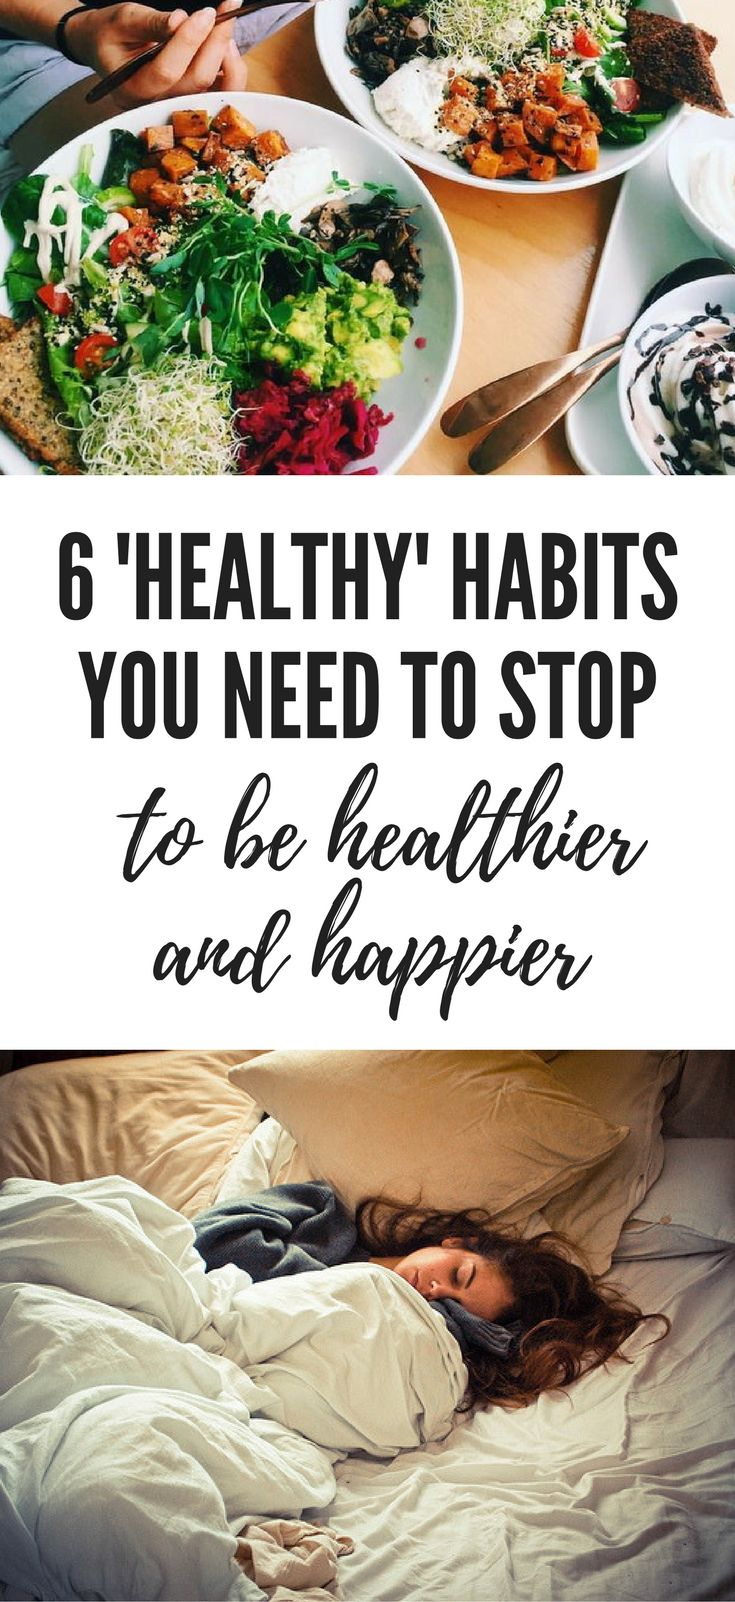 Are you doing sabotaging your health without realising it? Stop doing these 6 'healthy' habits.